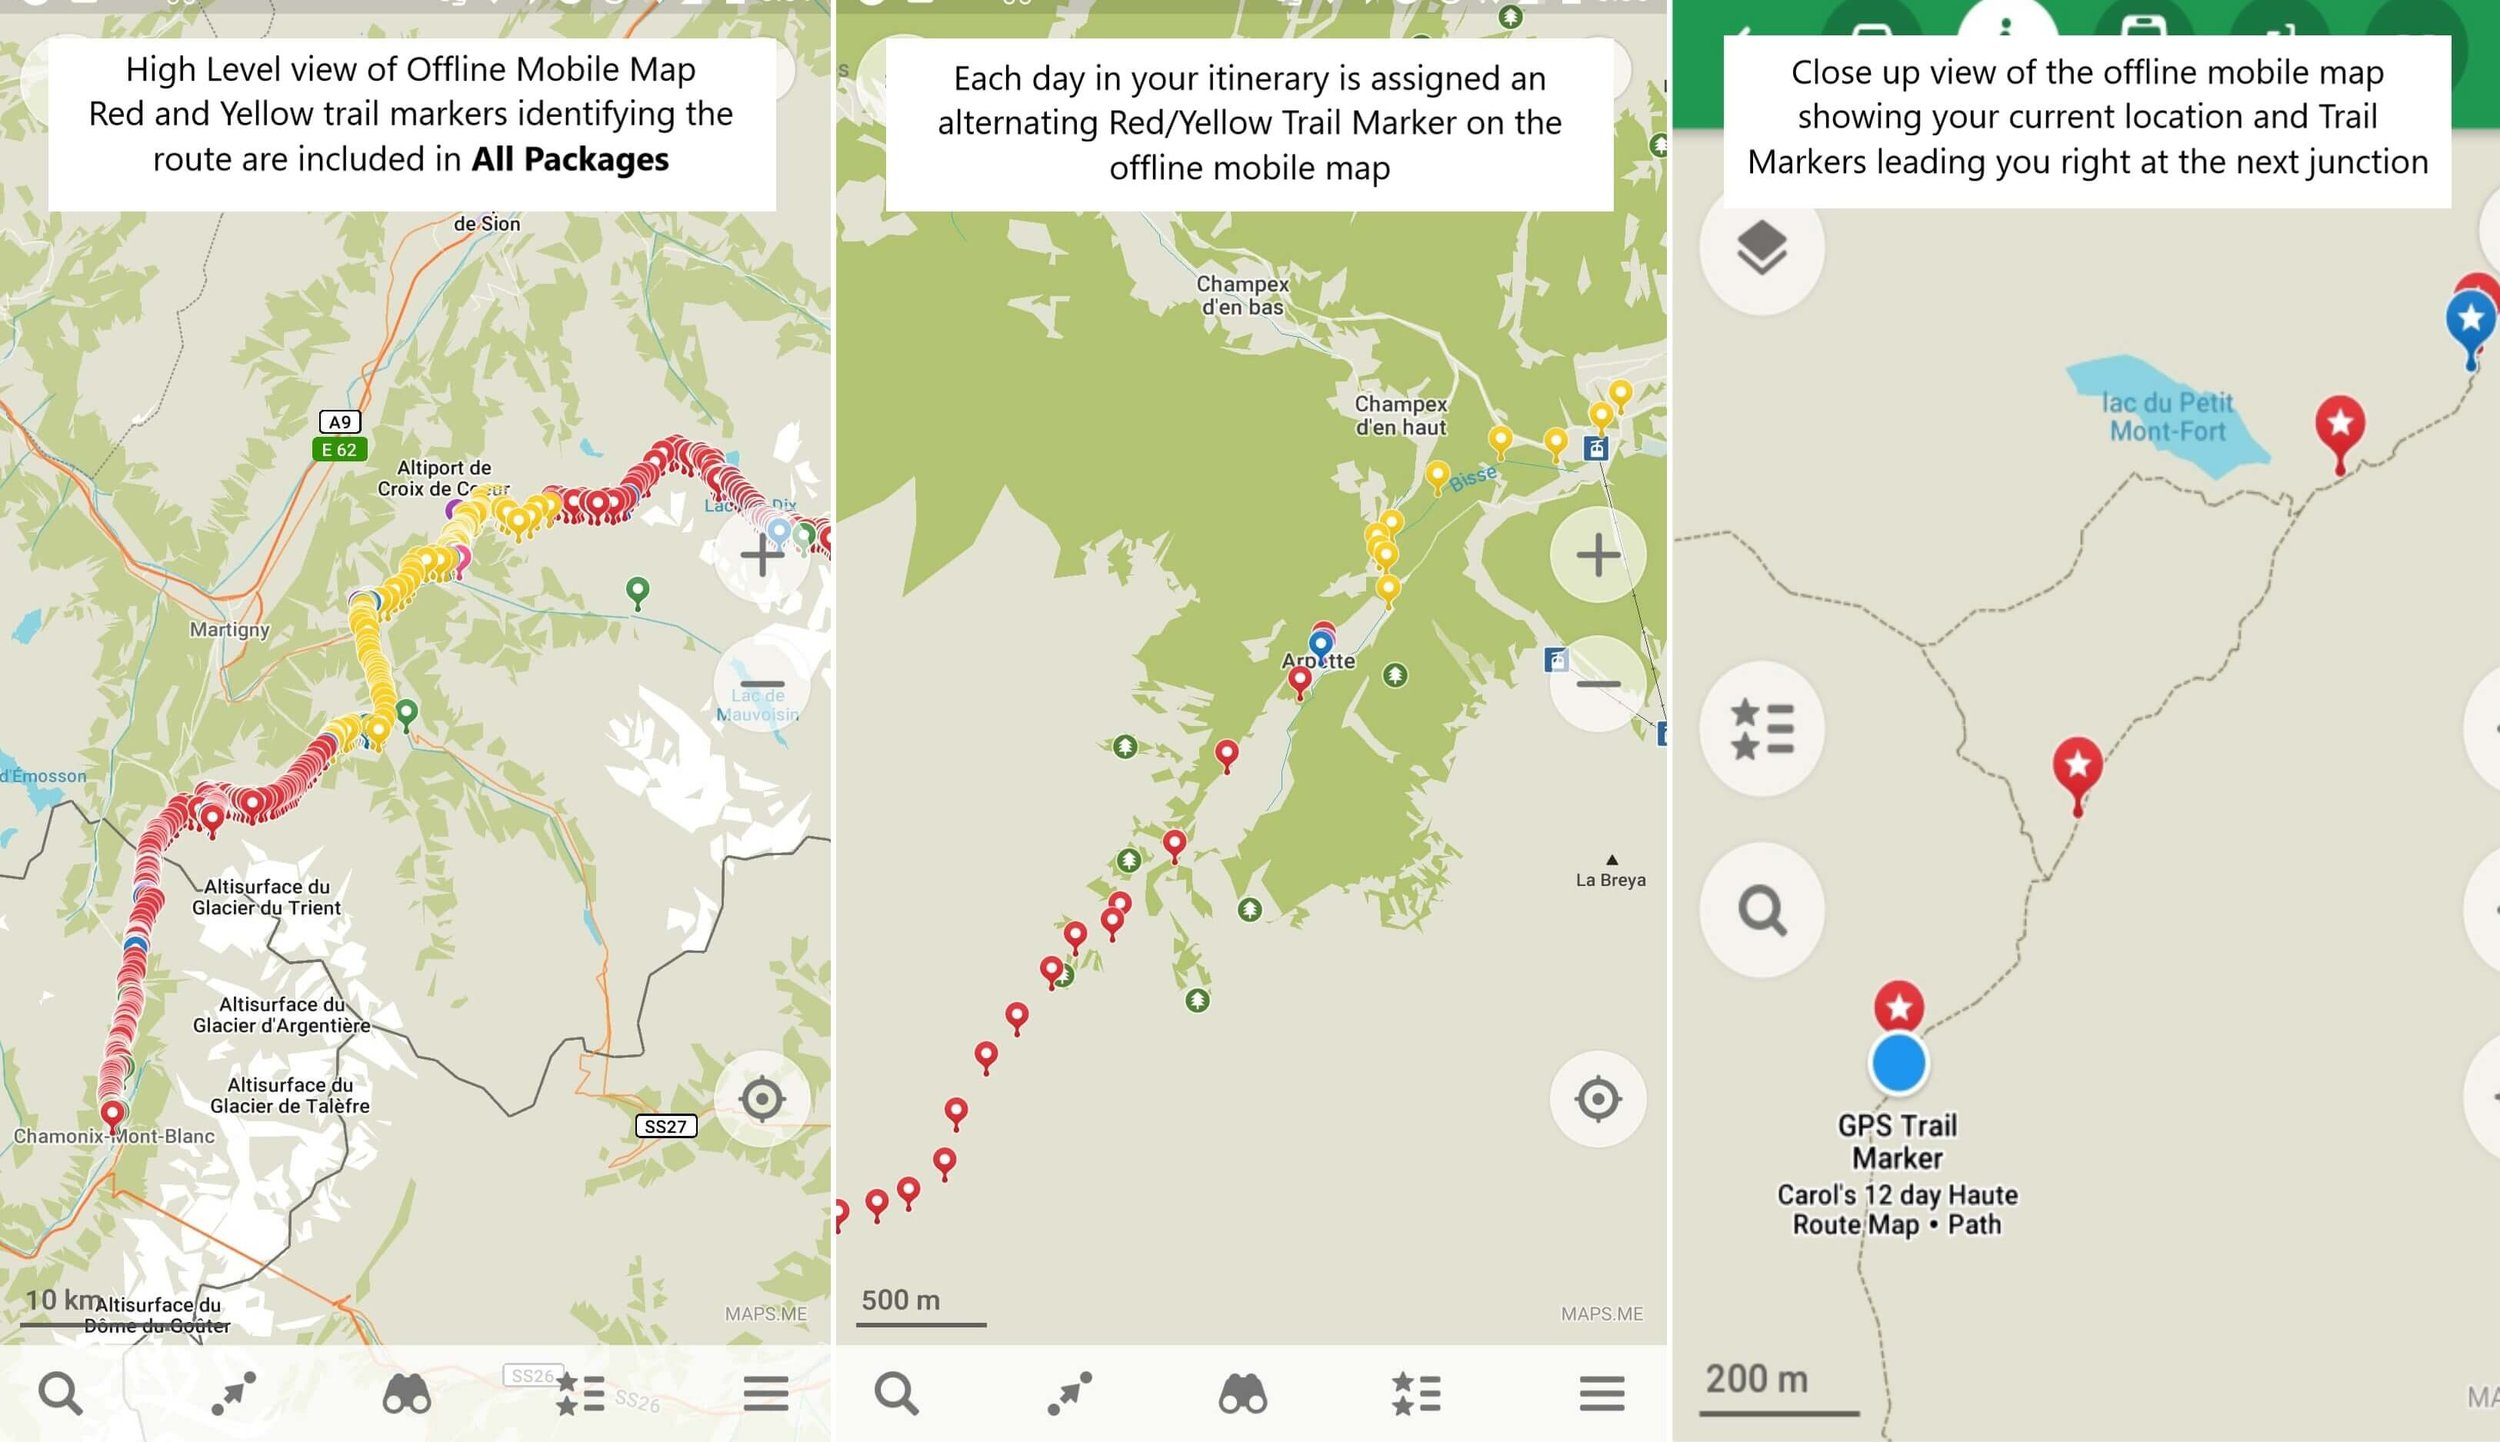 Offline Mobile Maps